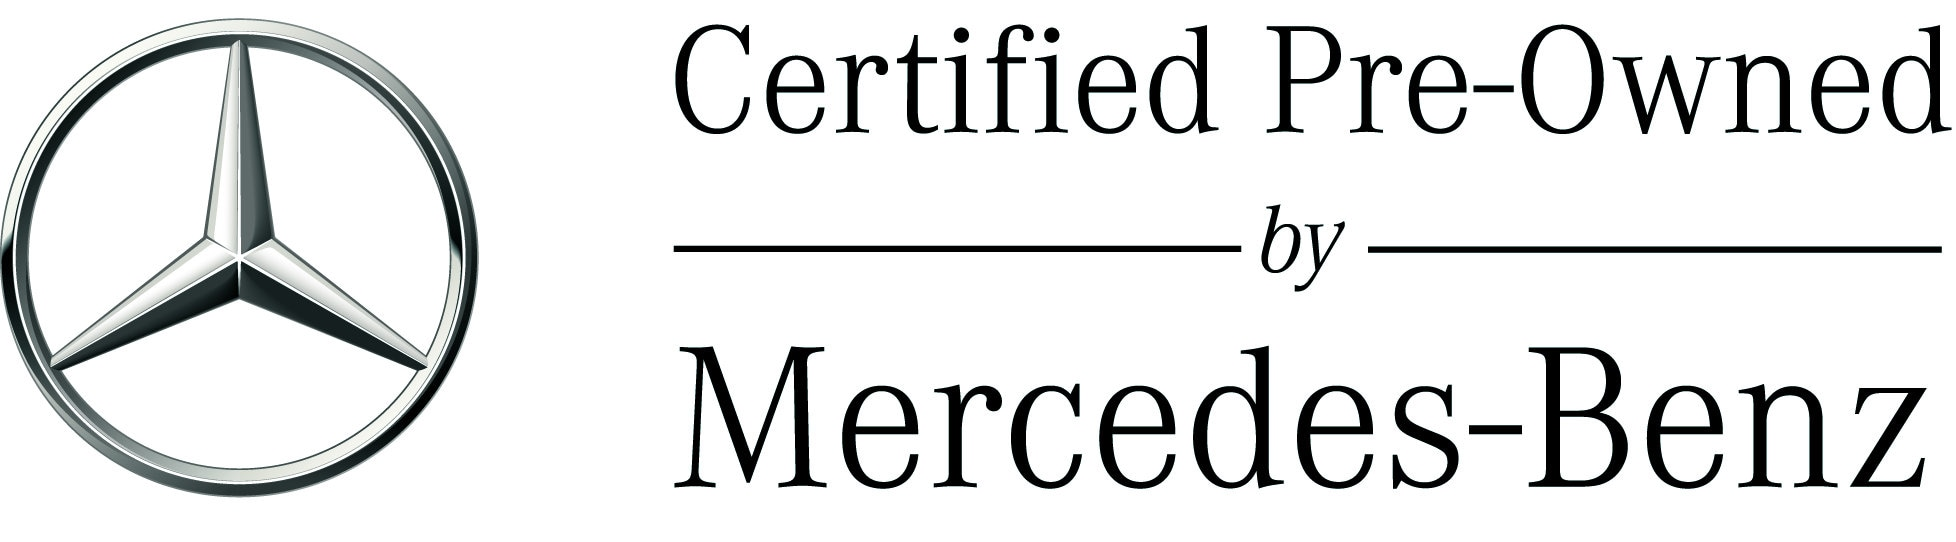 Mercedes benz at herb chambers what 39 s a certified pre for Mercedes benz certified pre owned program